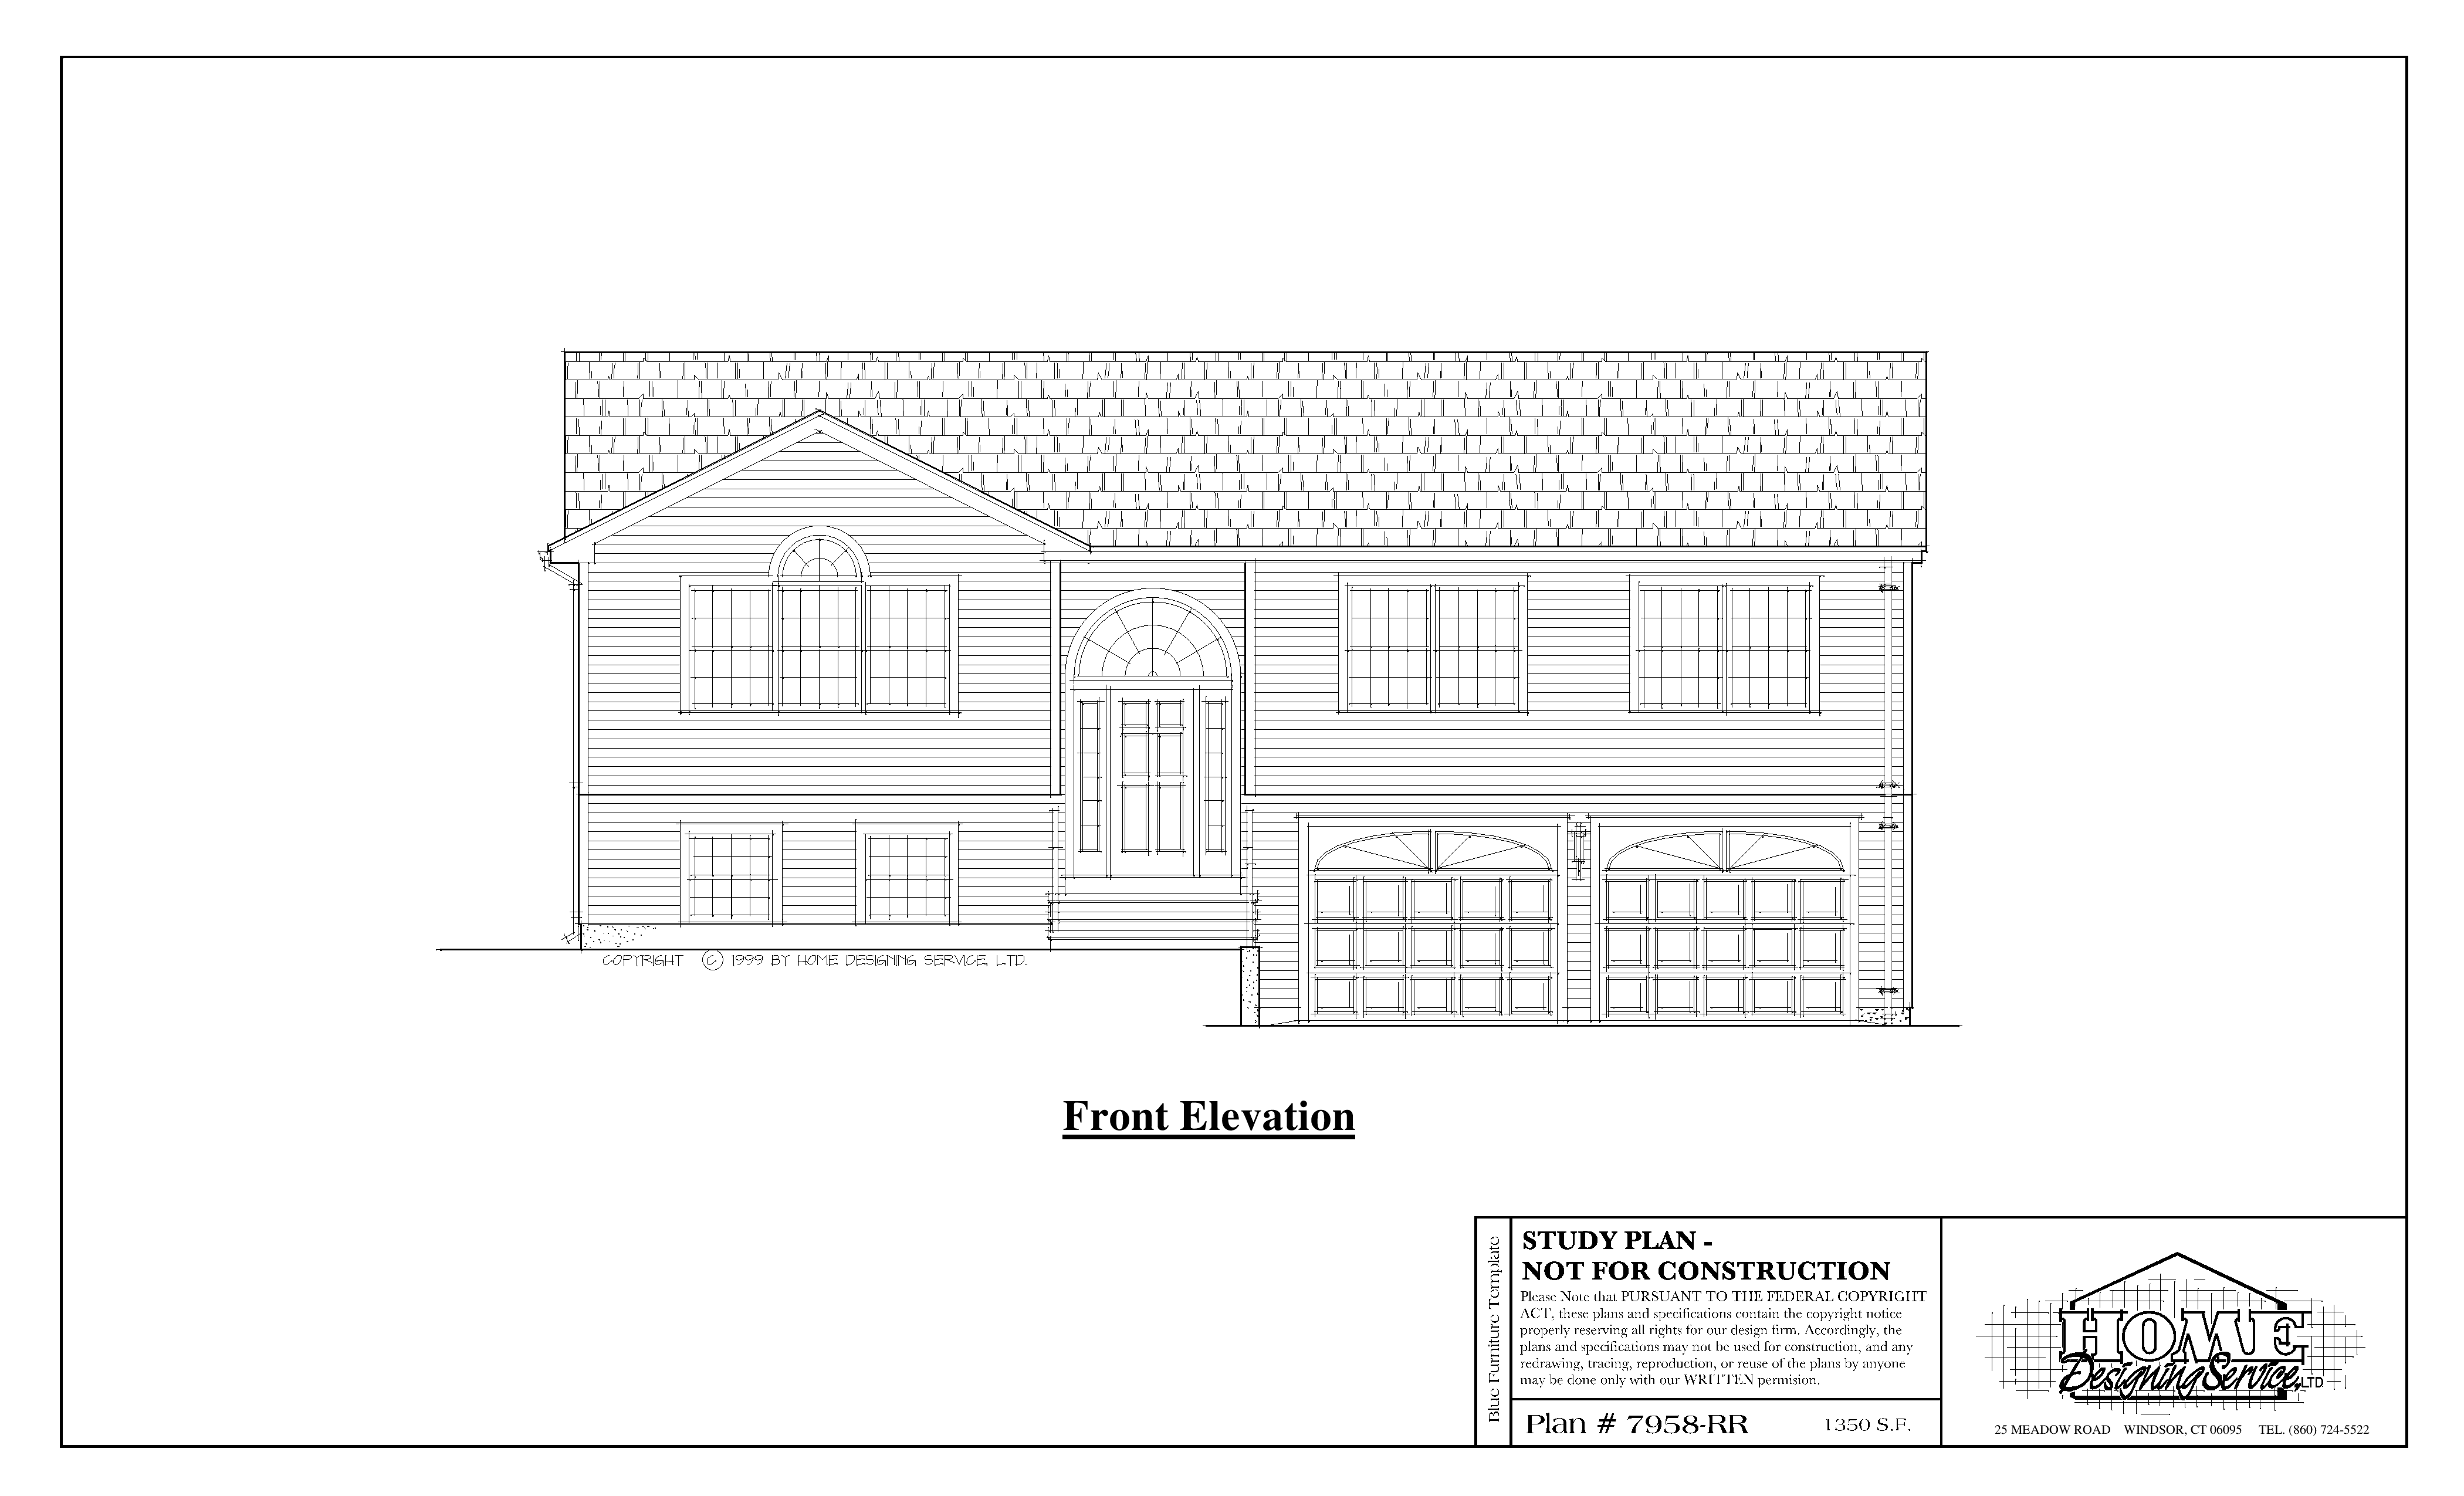 Raised Ranch House Plan 7958-RR - Home Designing Service Ltd. on flood proof house designs, small house designs, coastal home designs, dead house designs, flat house designs, elevated house designs, large house designs, living house designs, light house designs, coastal stilt house plans designs, inspired house designs, glass house designs, raised glass, ranch house designs, raised houses in new orleans, standard house designs, blue house designs, square house designs, home floor plans and designs, award-winning beach house designs,